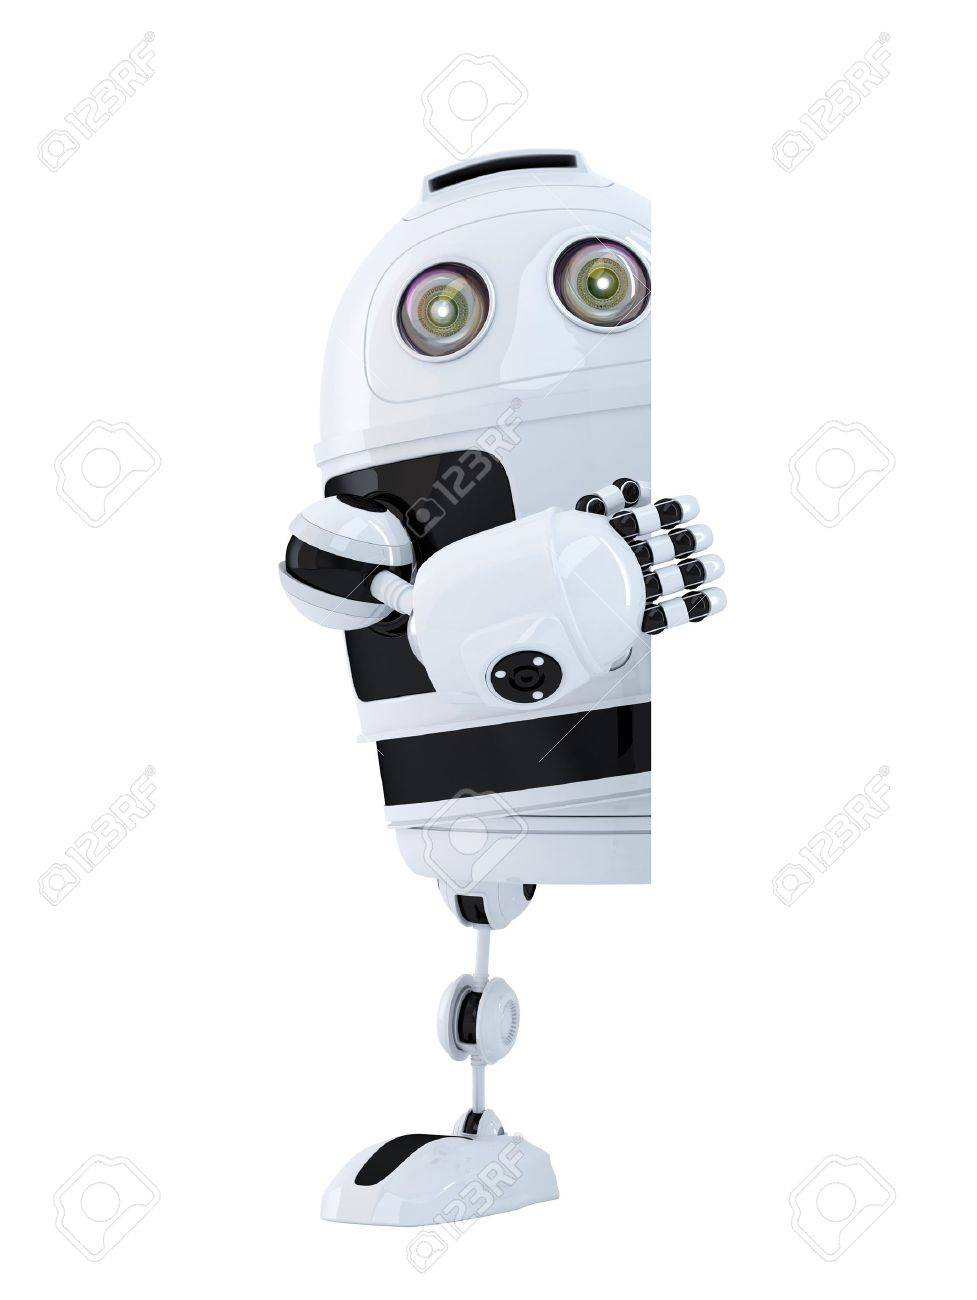 Robot standing behind blank banner. Isolated. Contains clipping path Standard-Bild - 29607652